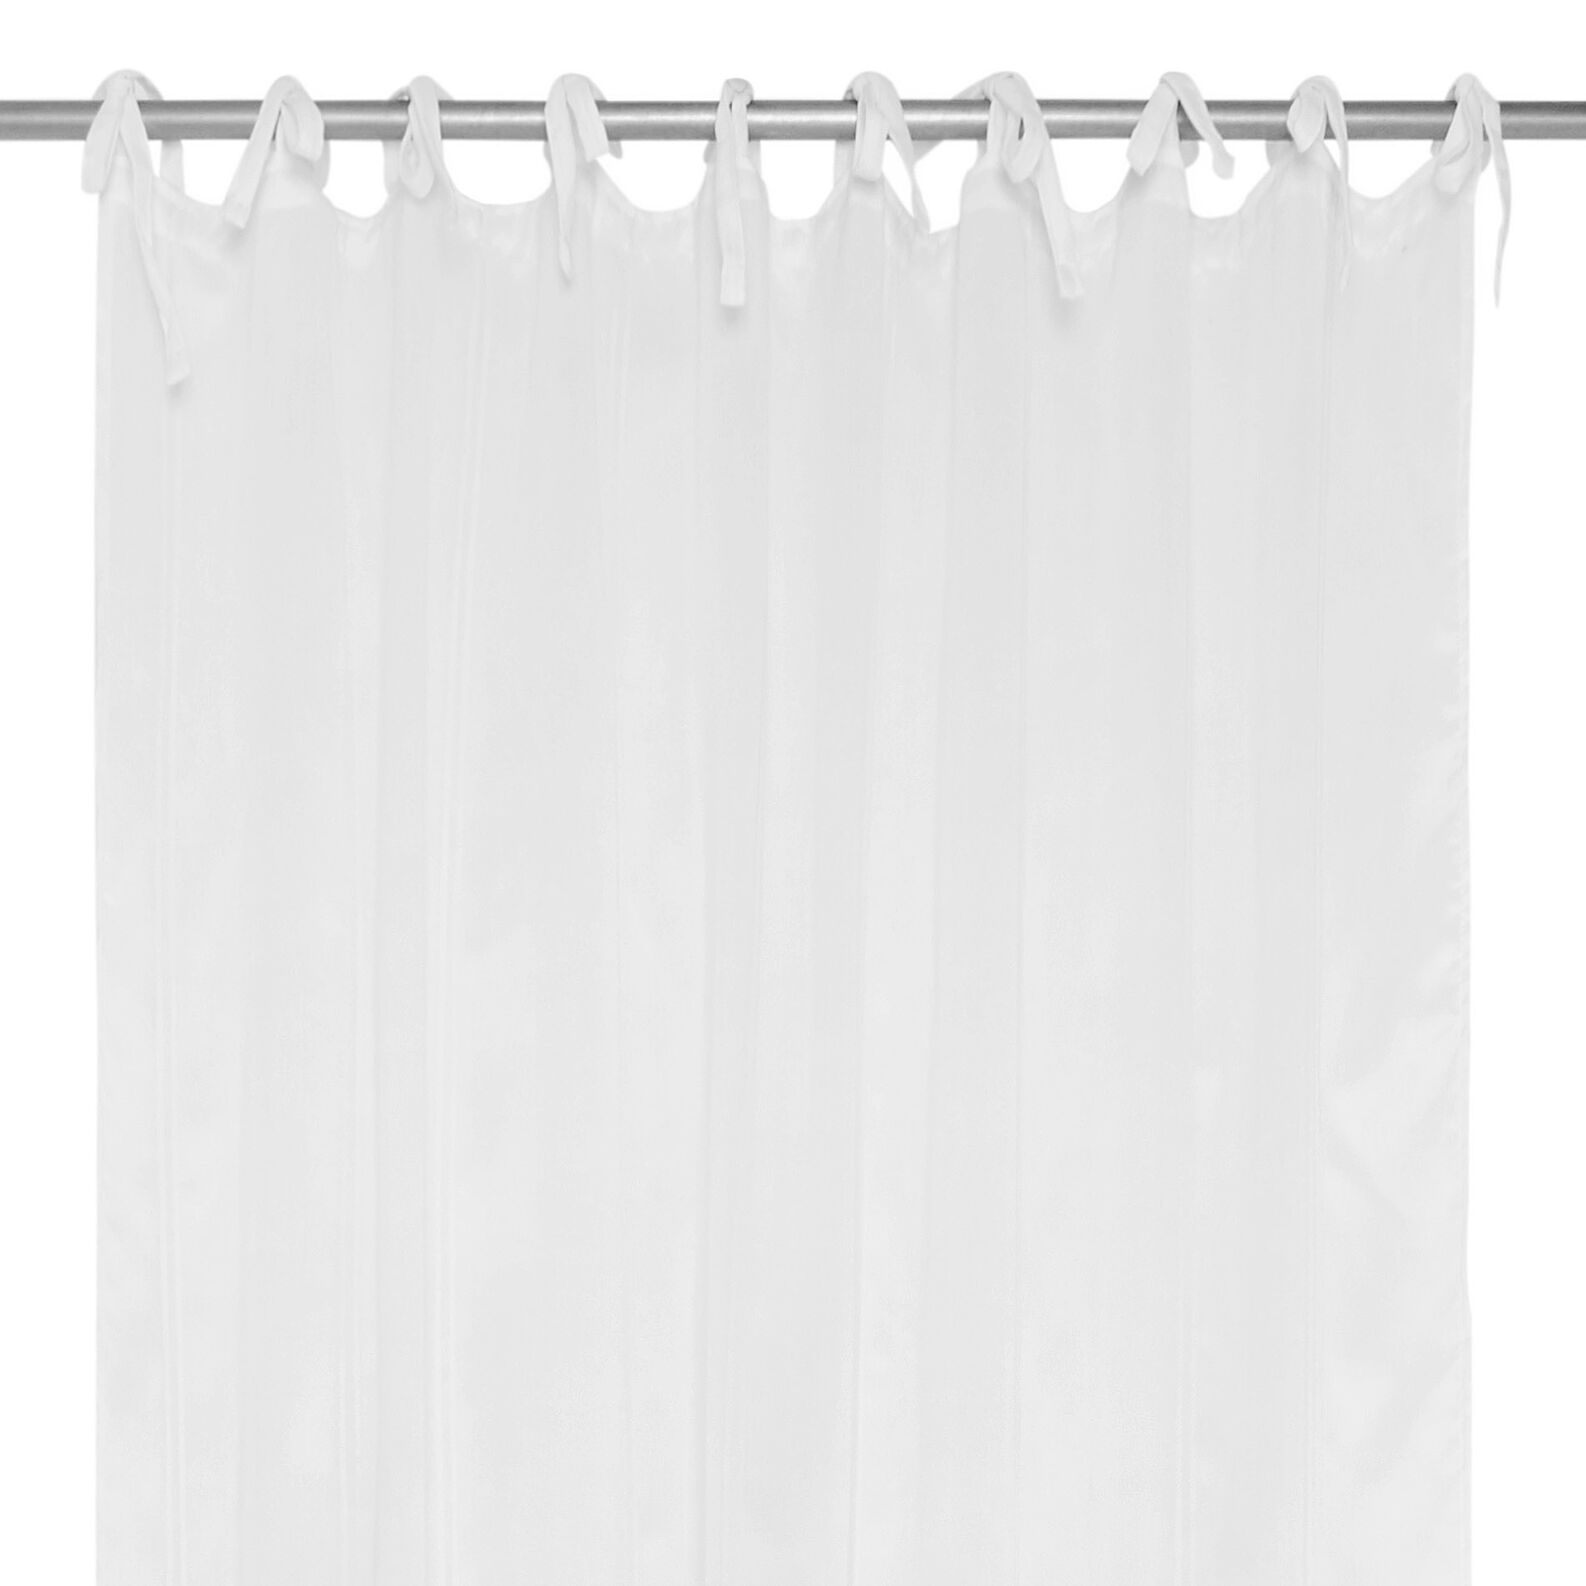 Striped embroidery curtain with laces